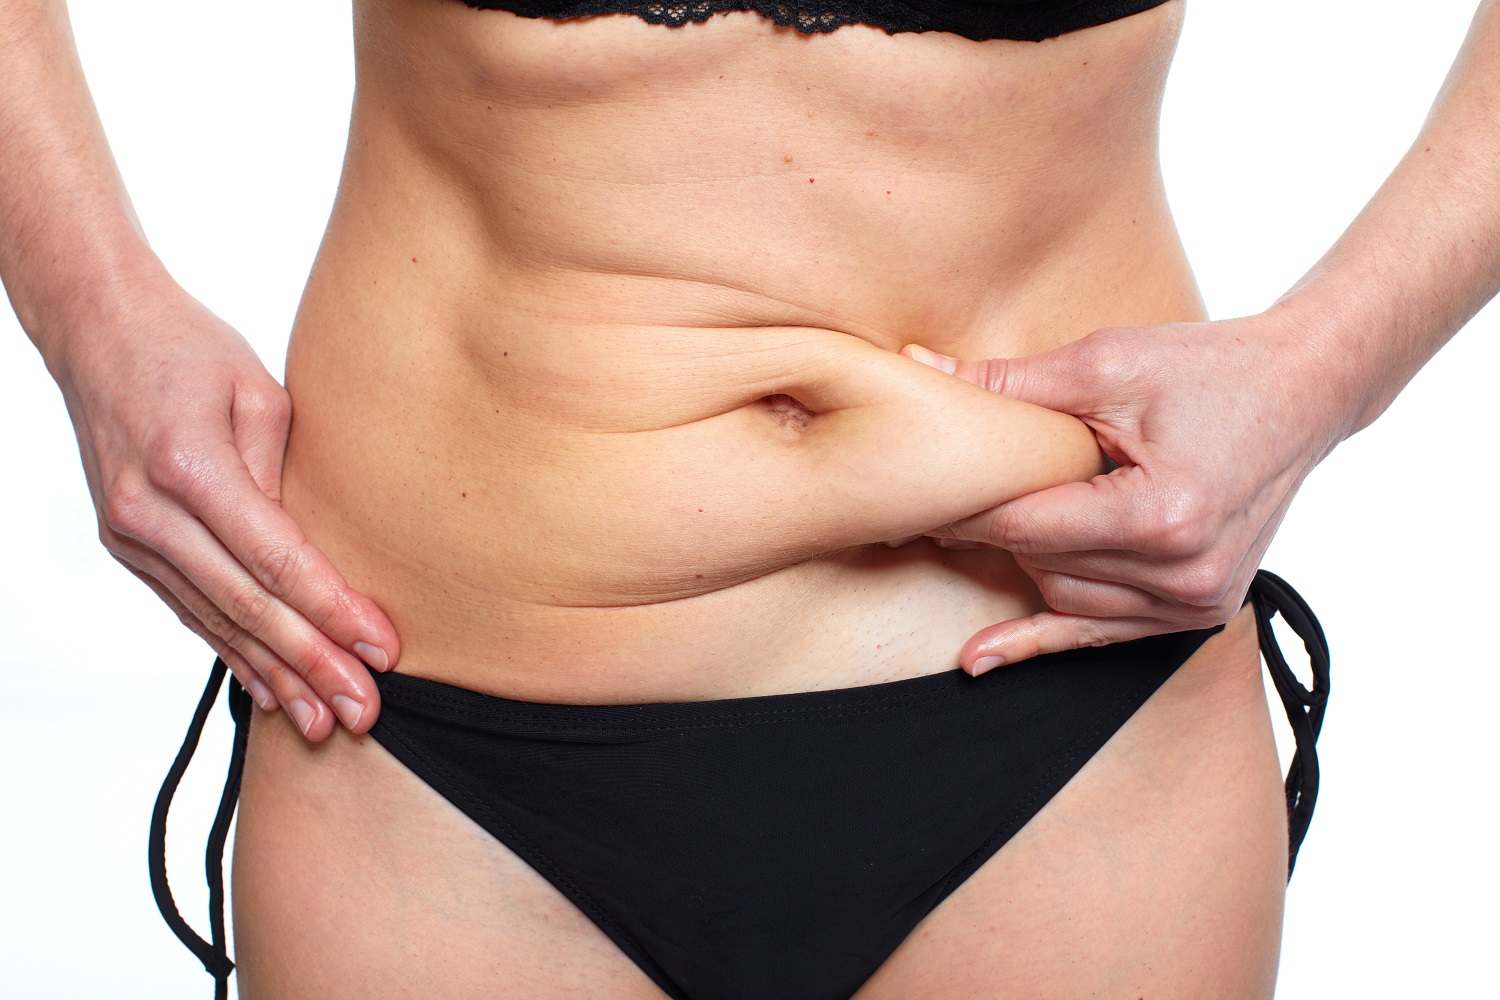 Indianapolis Tummy Tuck FAQ